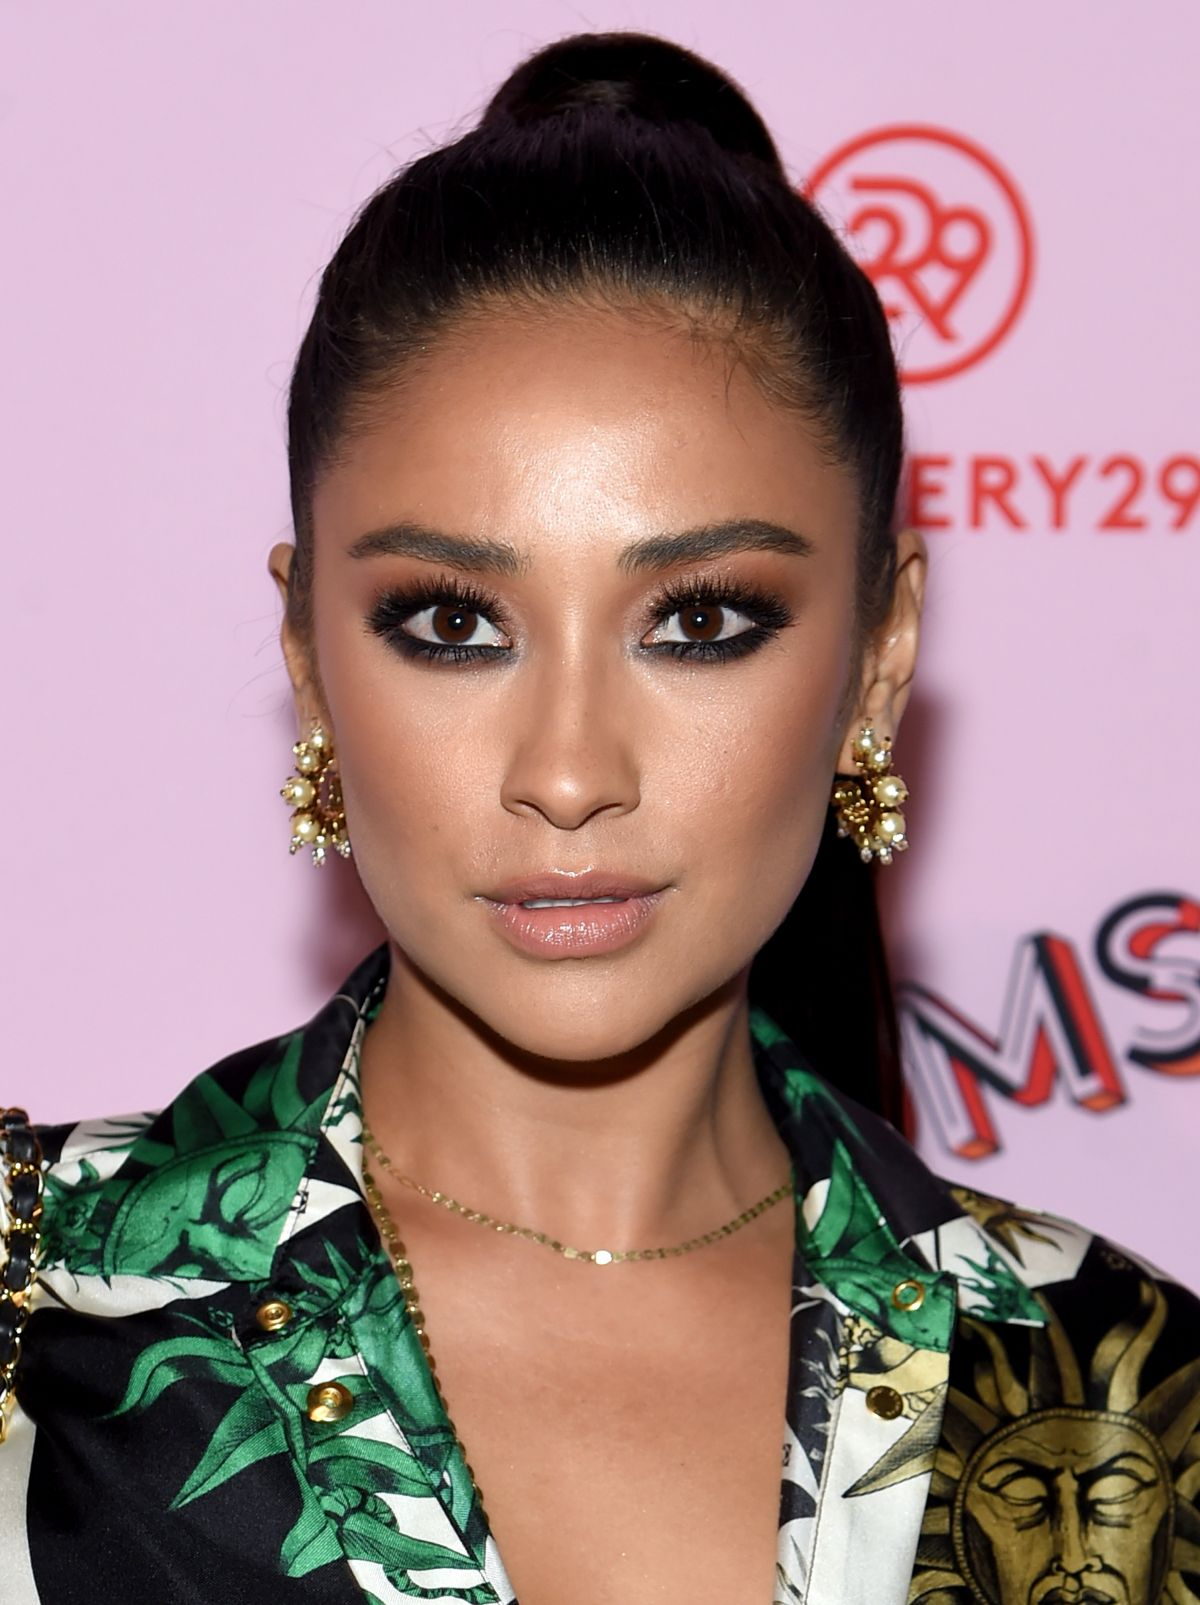 Shay Mitchell At Refinery29 Third Annual 29rooms Turn It Into Art Event In Brooklyn 09 07 2017